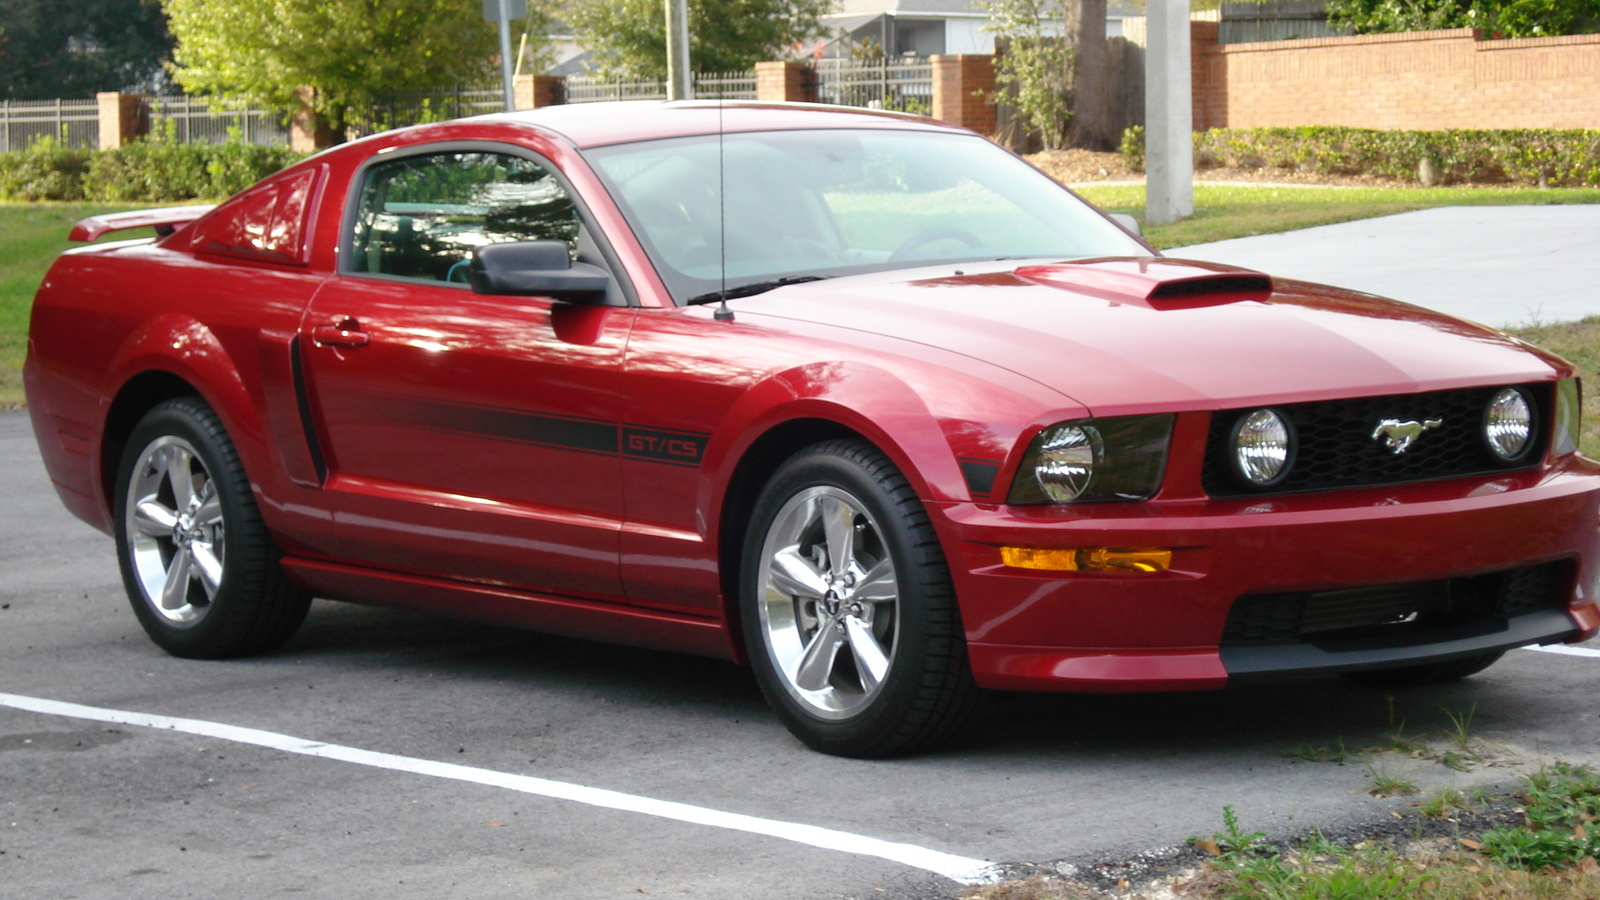 2007 Ford Mustang #3